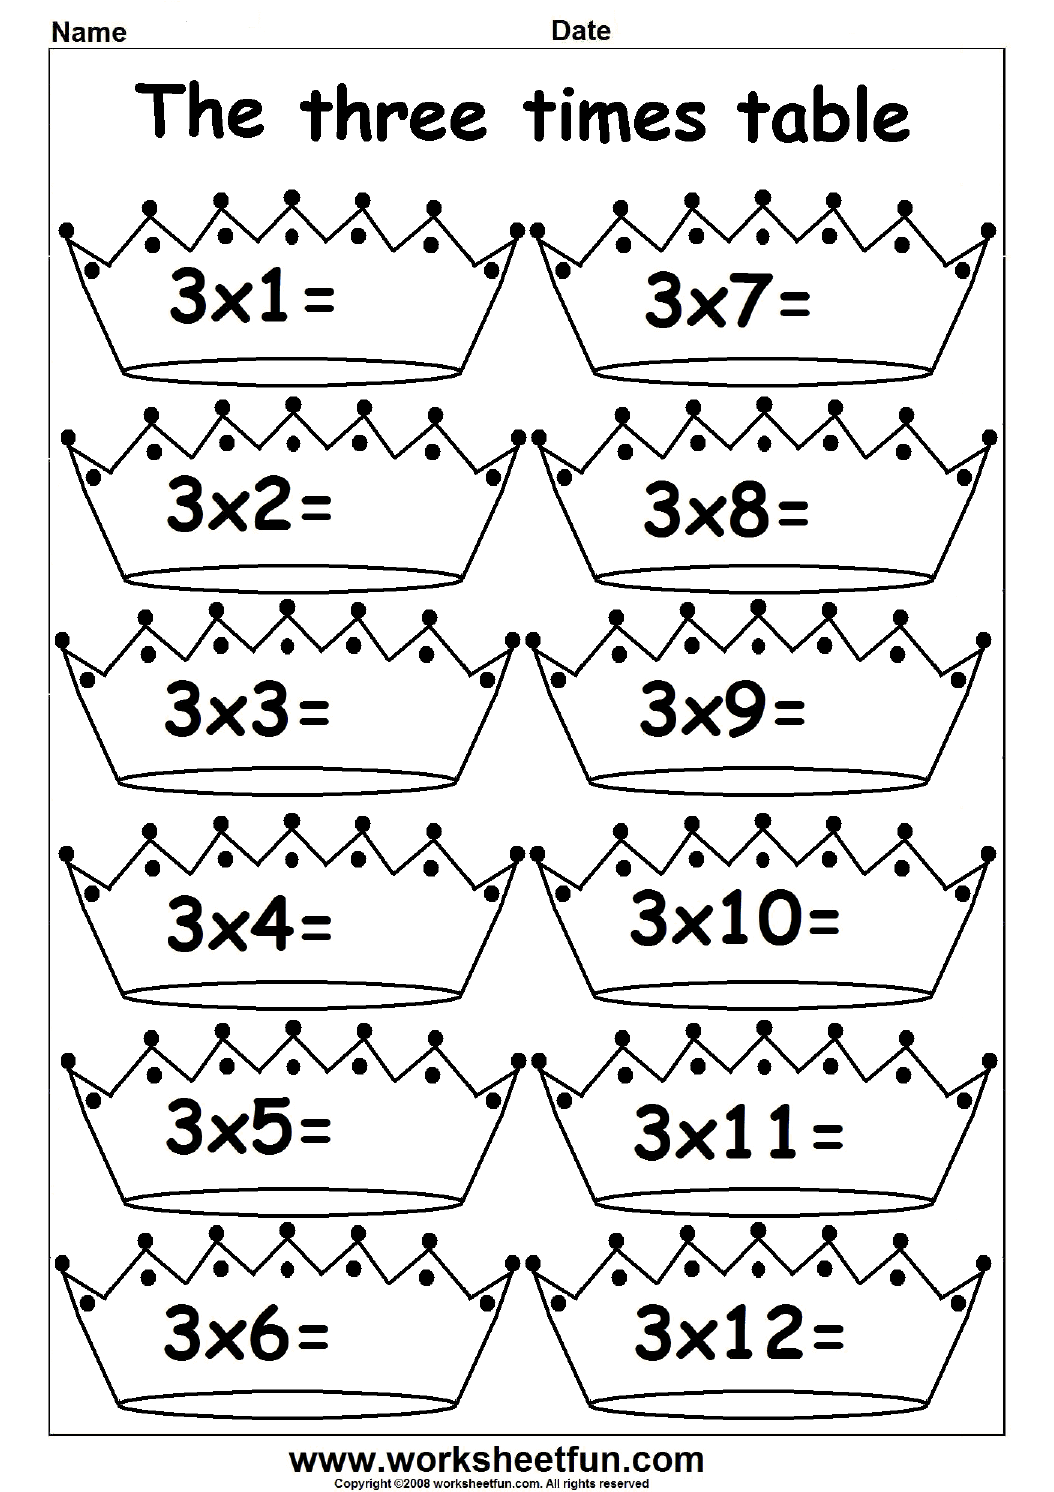 2 3 4 5 6 7 8 9 10 11 And 12 Times Table